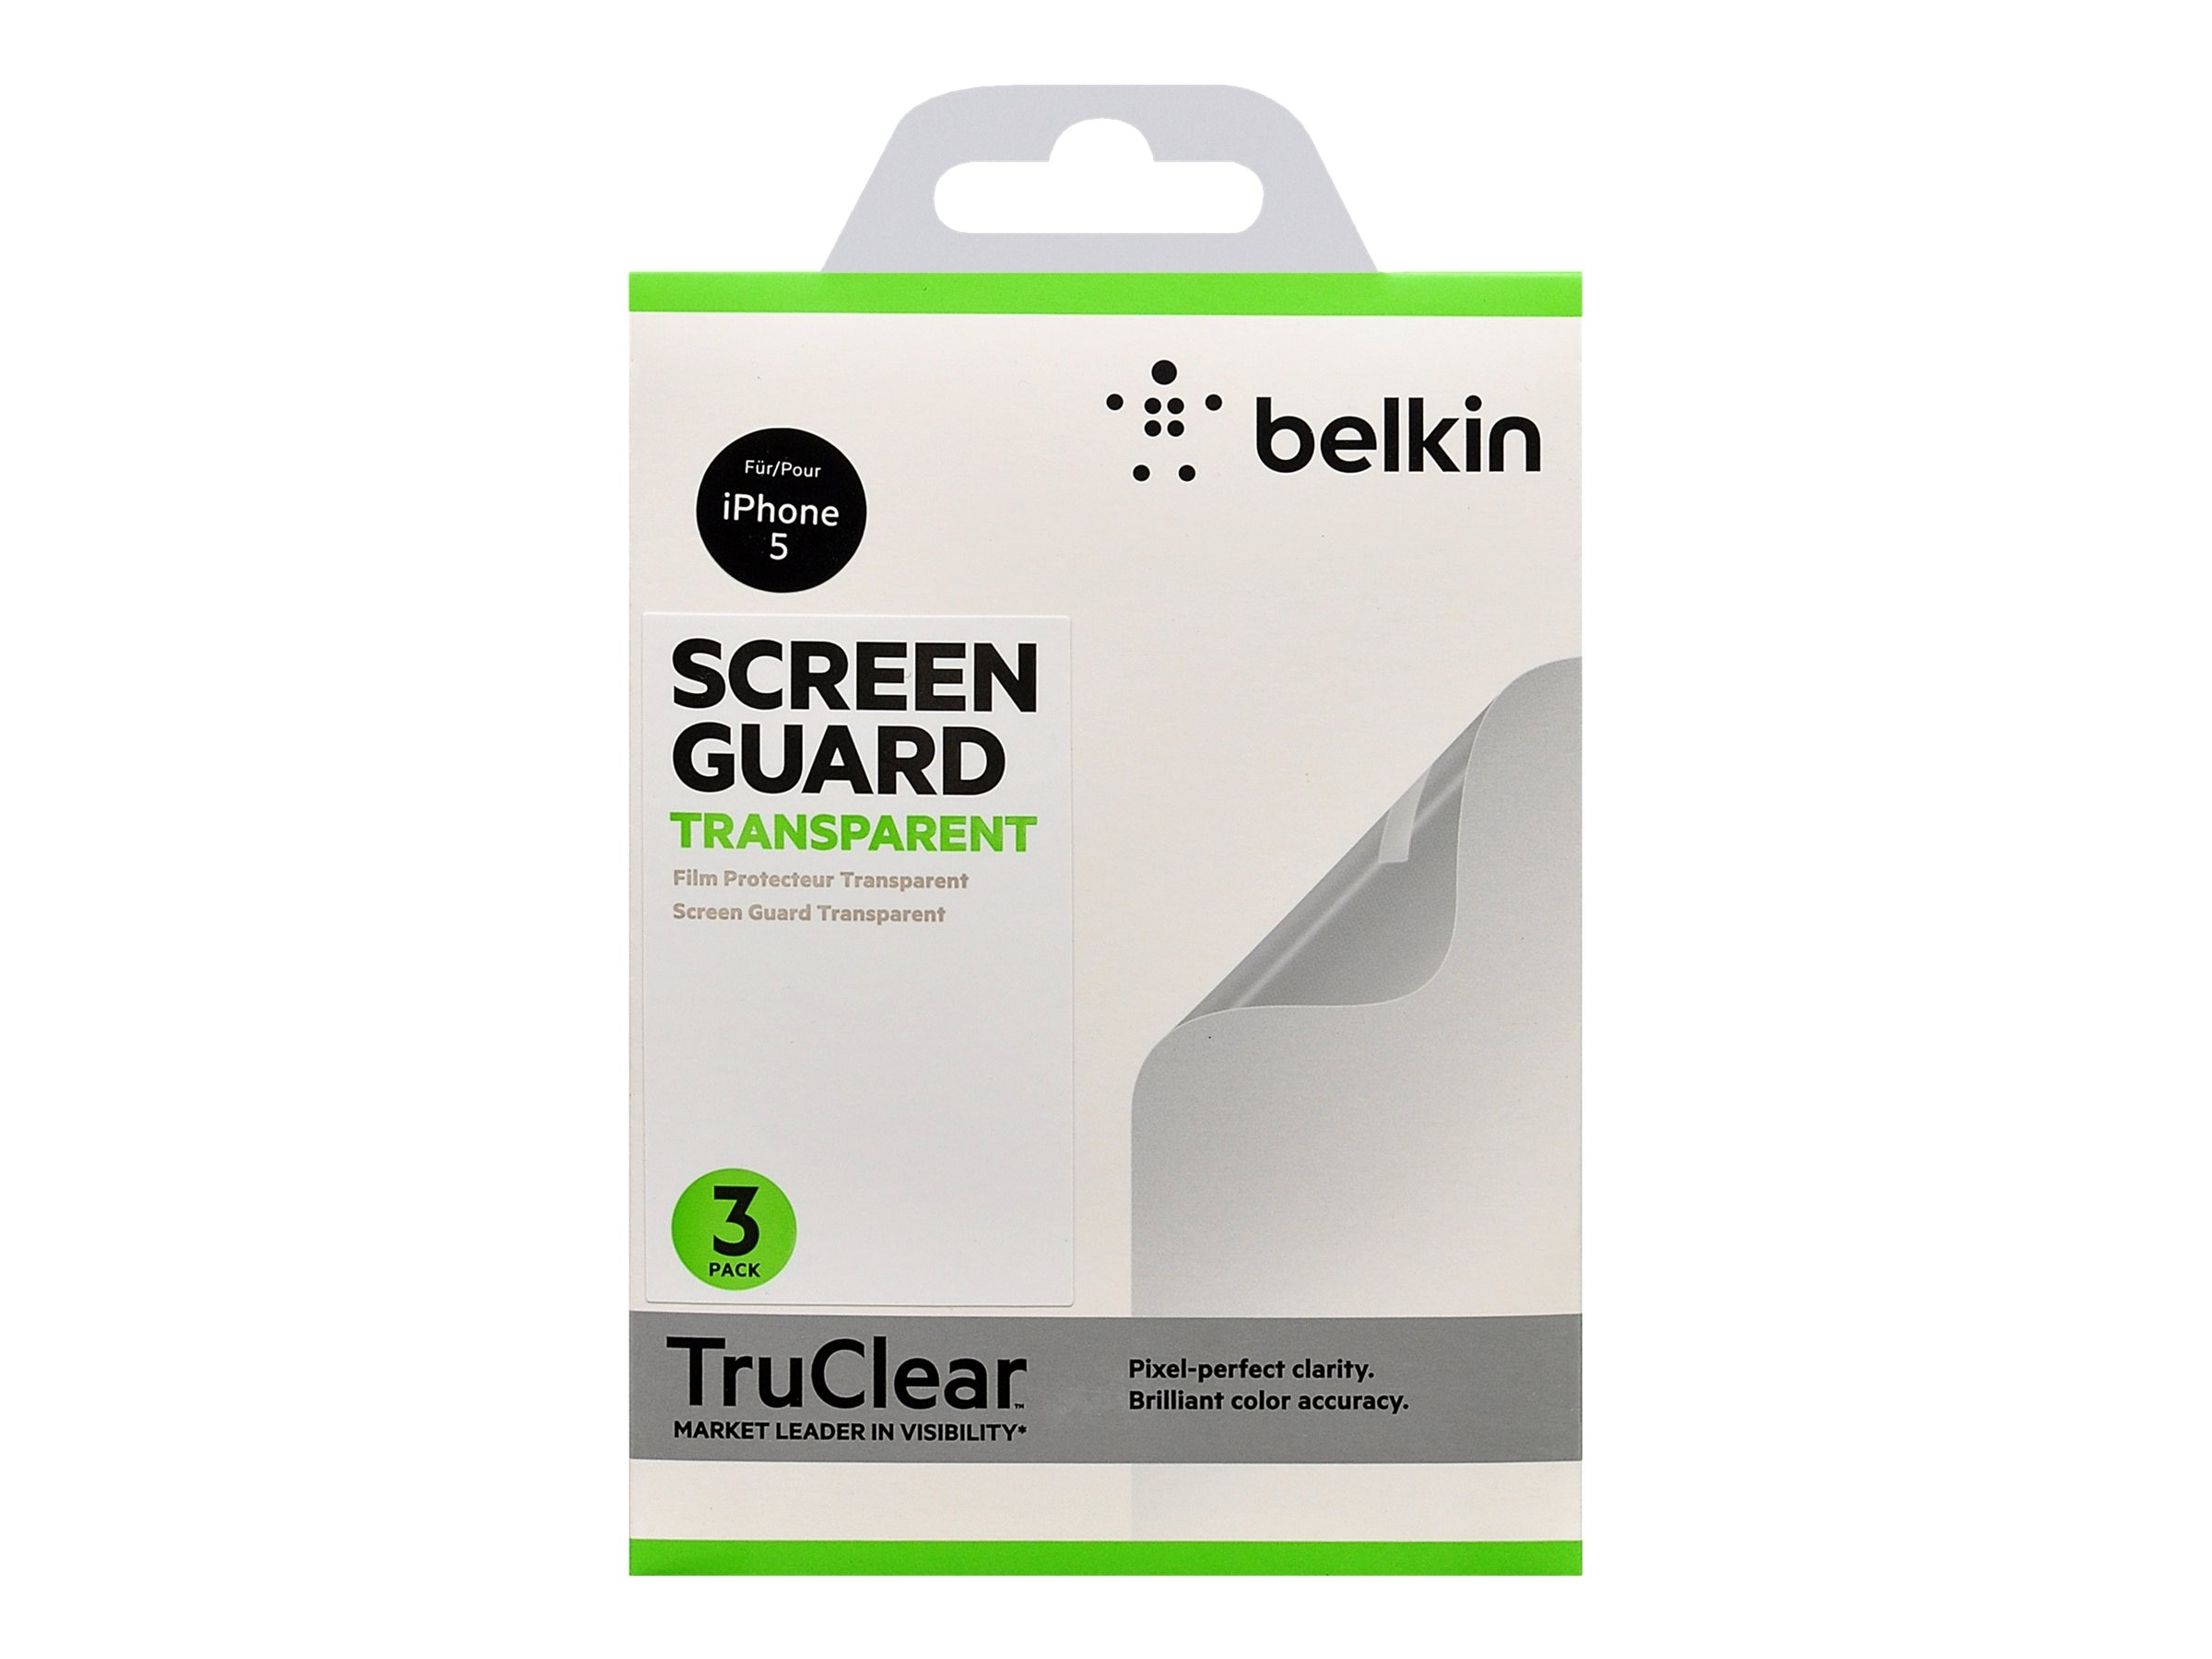 Belkin Screen Protector for iPhone 5, Clear, F8W179TT3